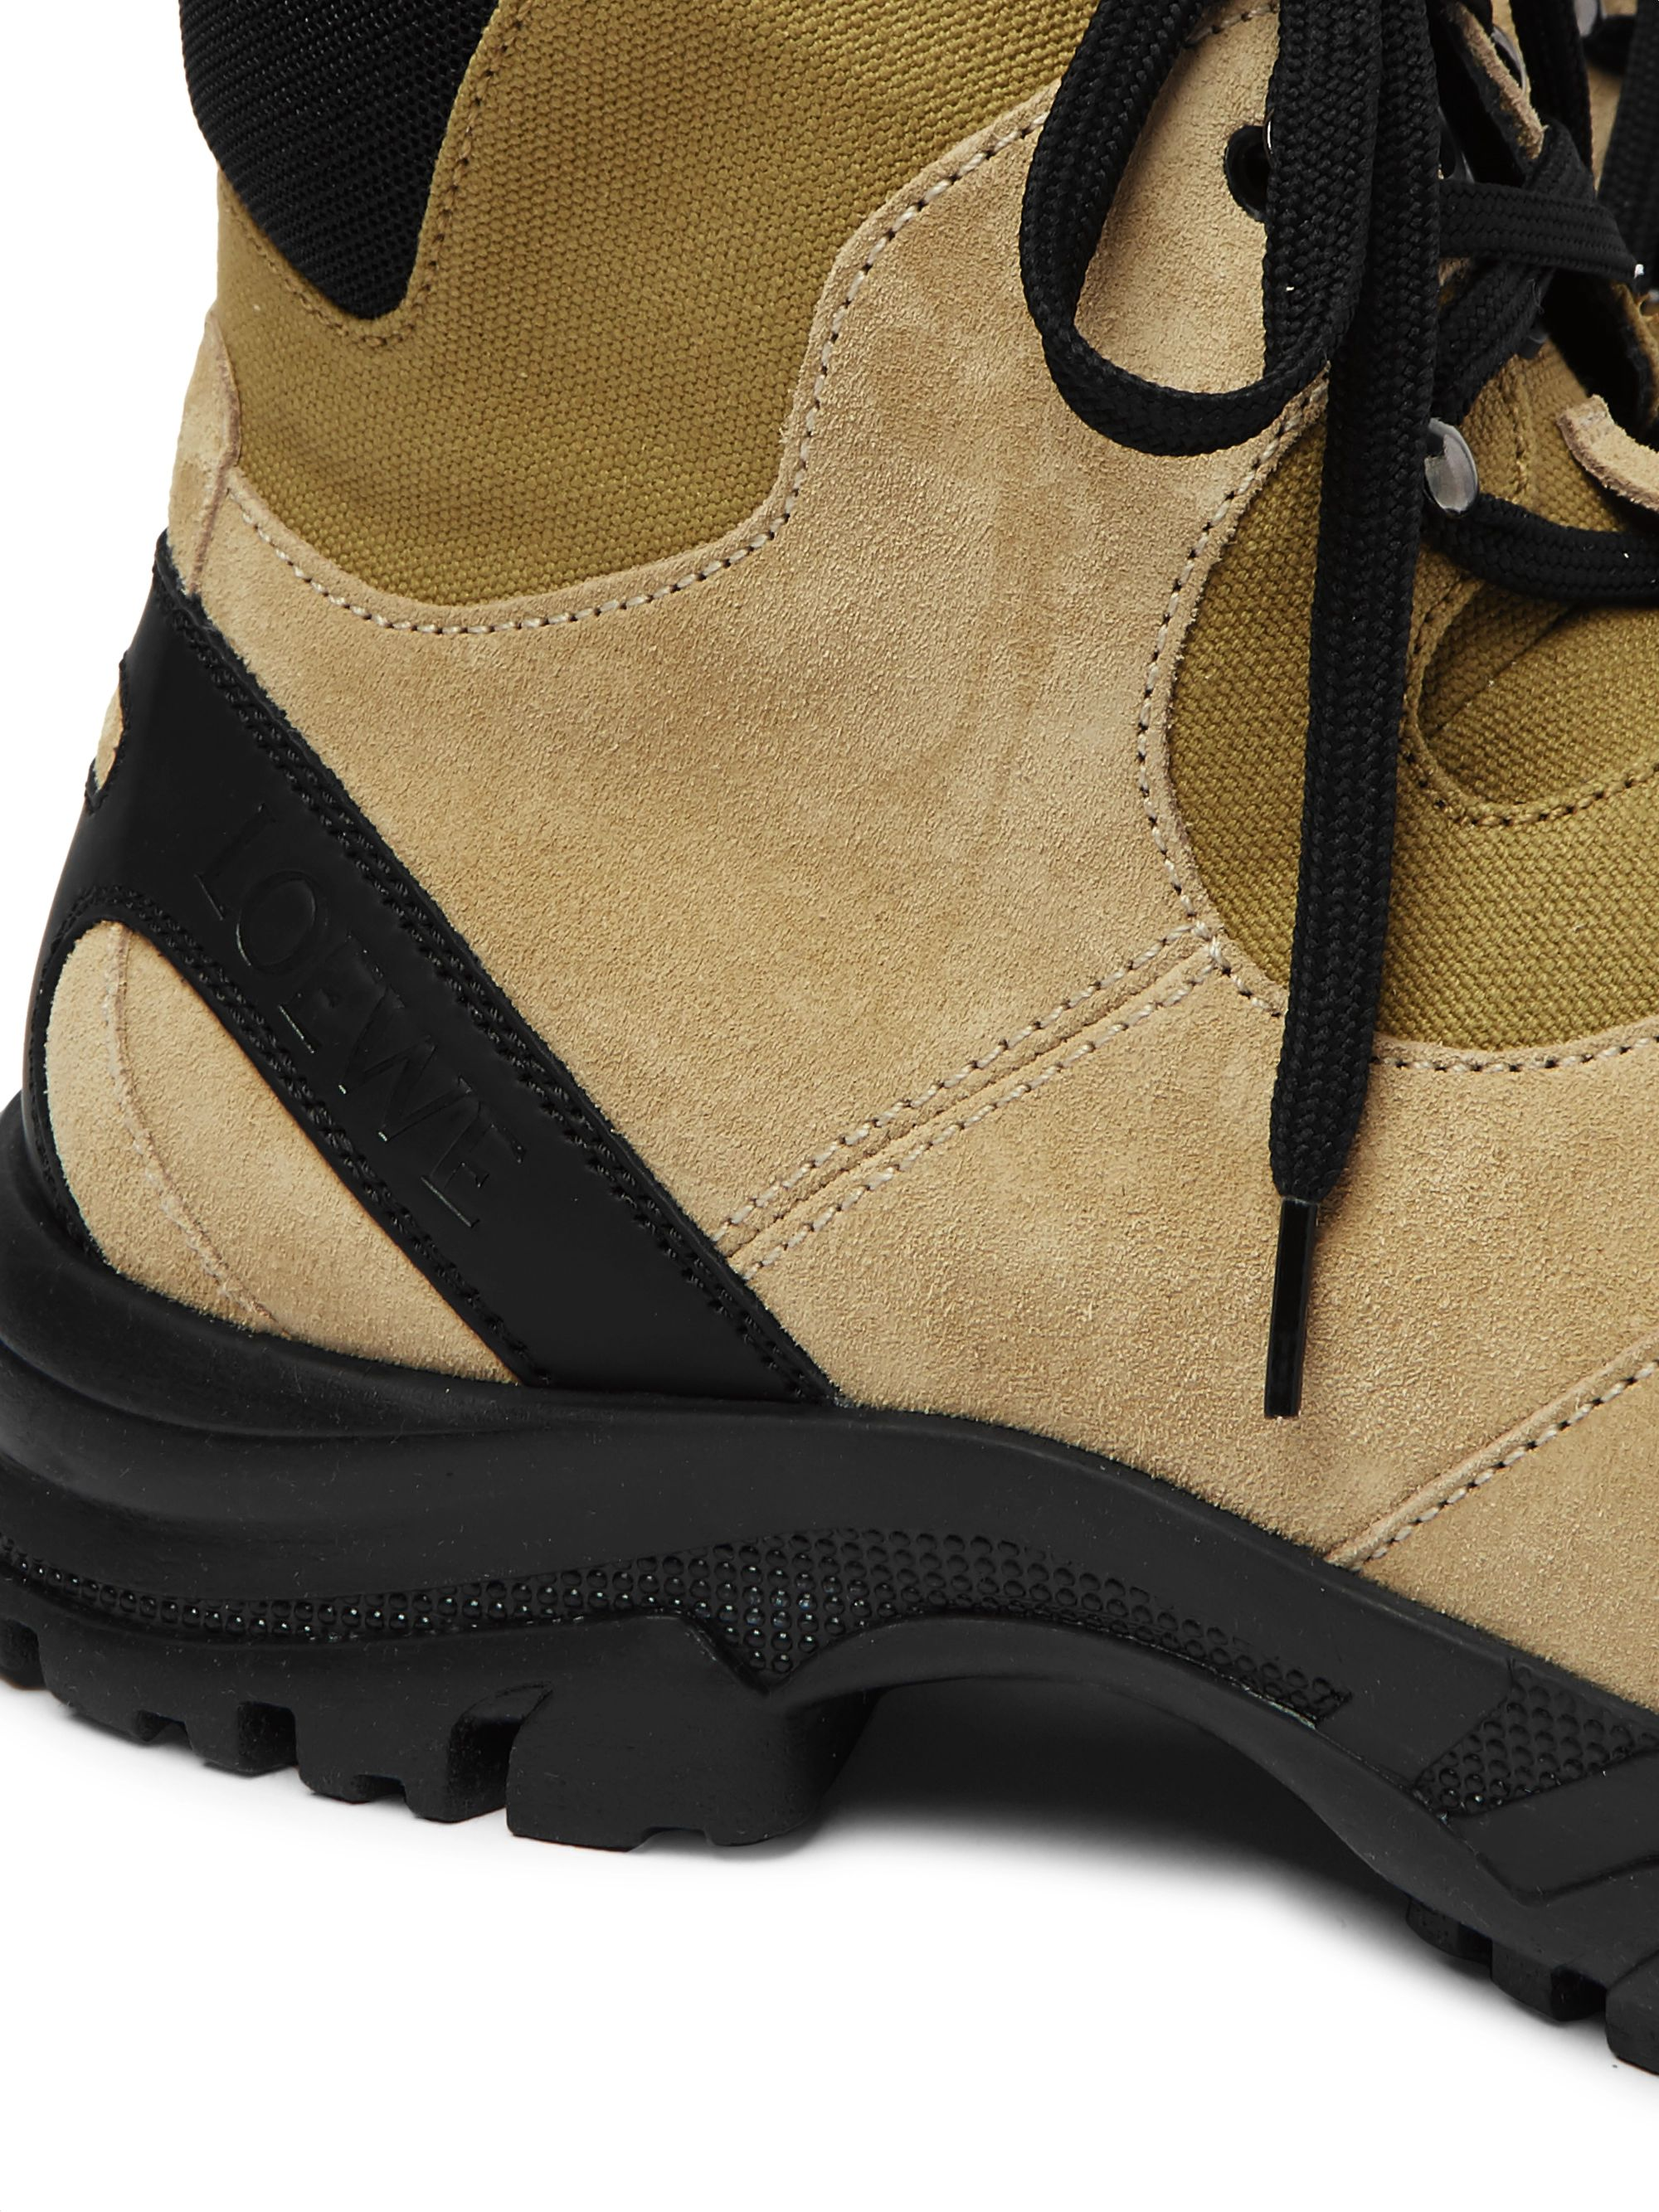 Loewe Eye/LOEWE/Nature Leather-Trimmed Suede and Mesh Boots